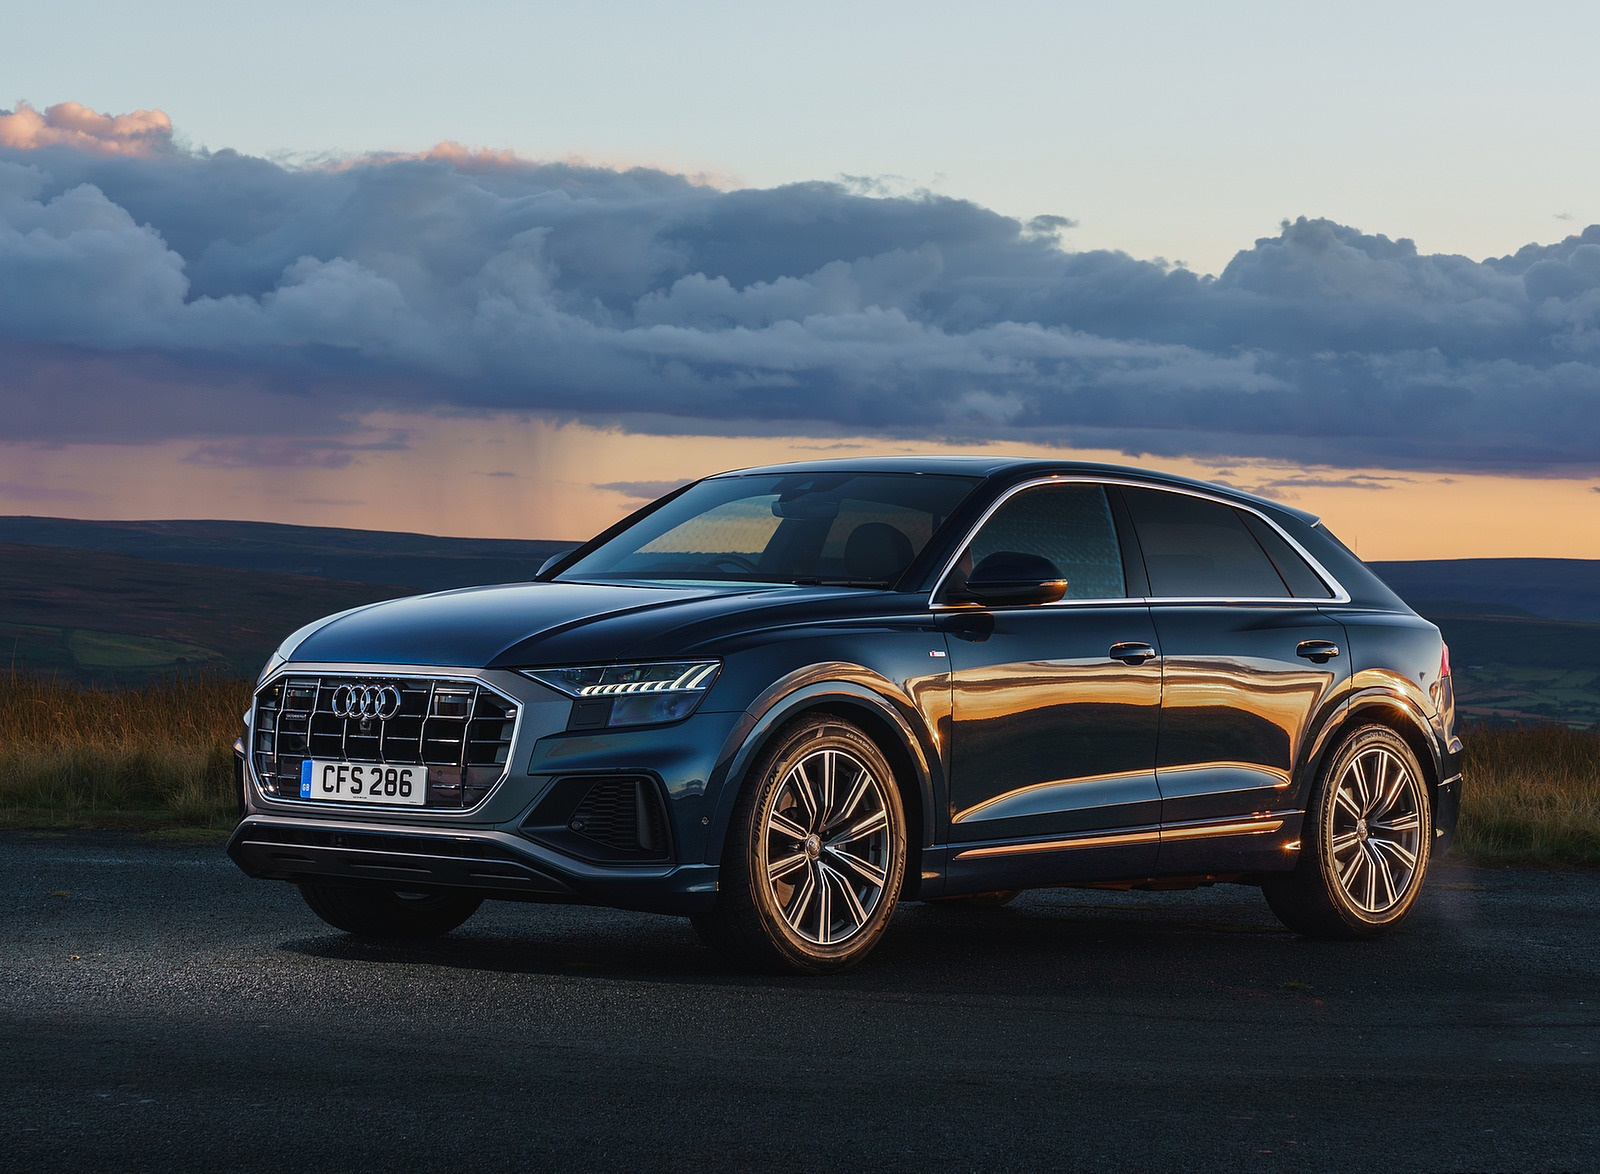 2019 Audi Q8 S Line 50 TDI Quattro (UK-Spec) Front Three-Quarter Wallpaper (8)